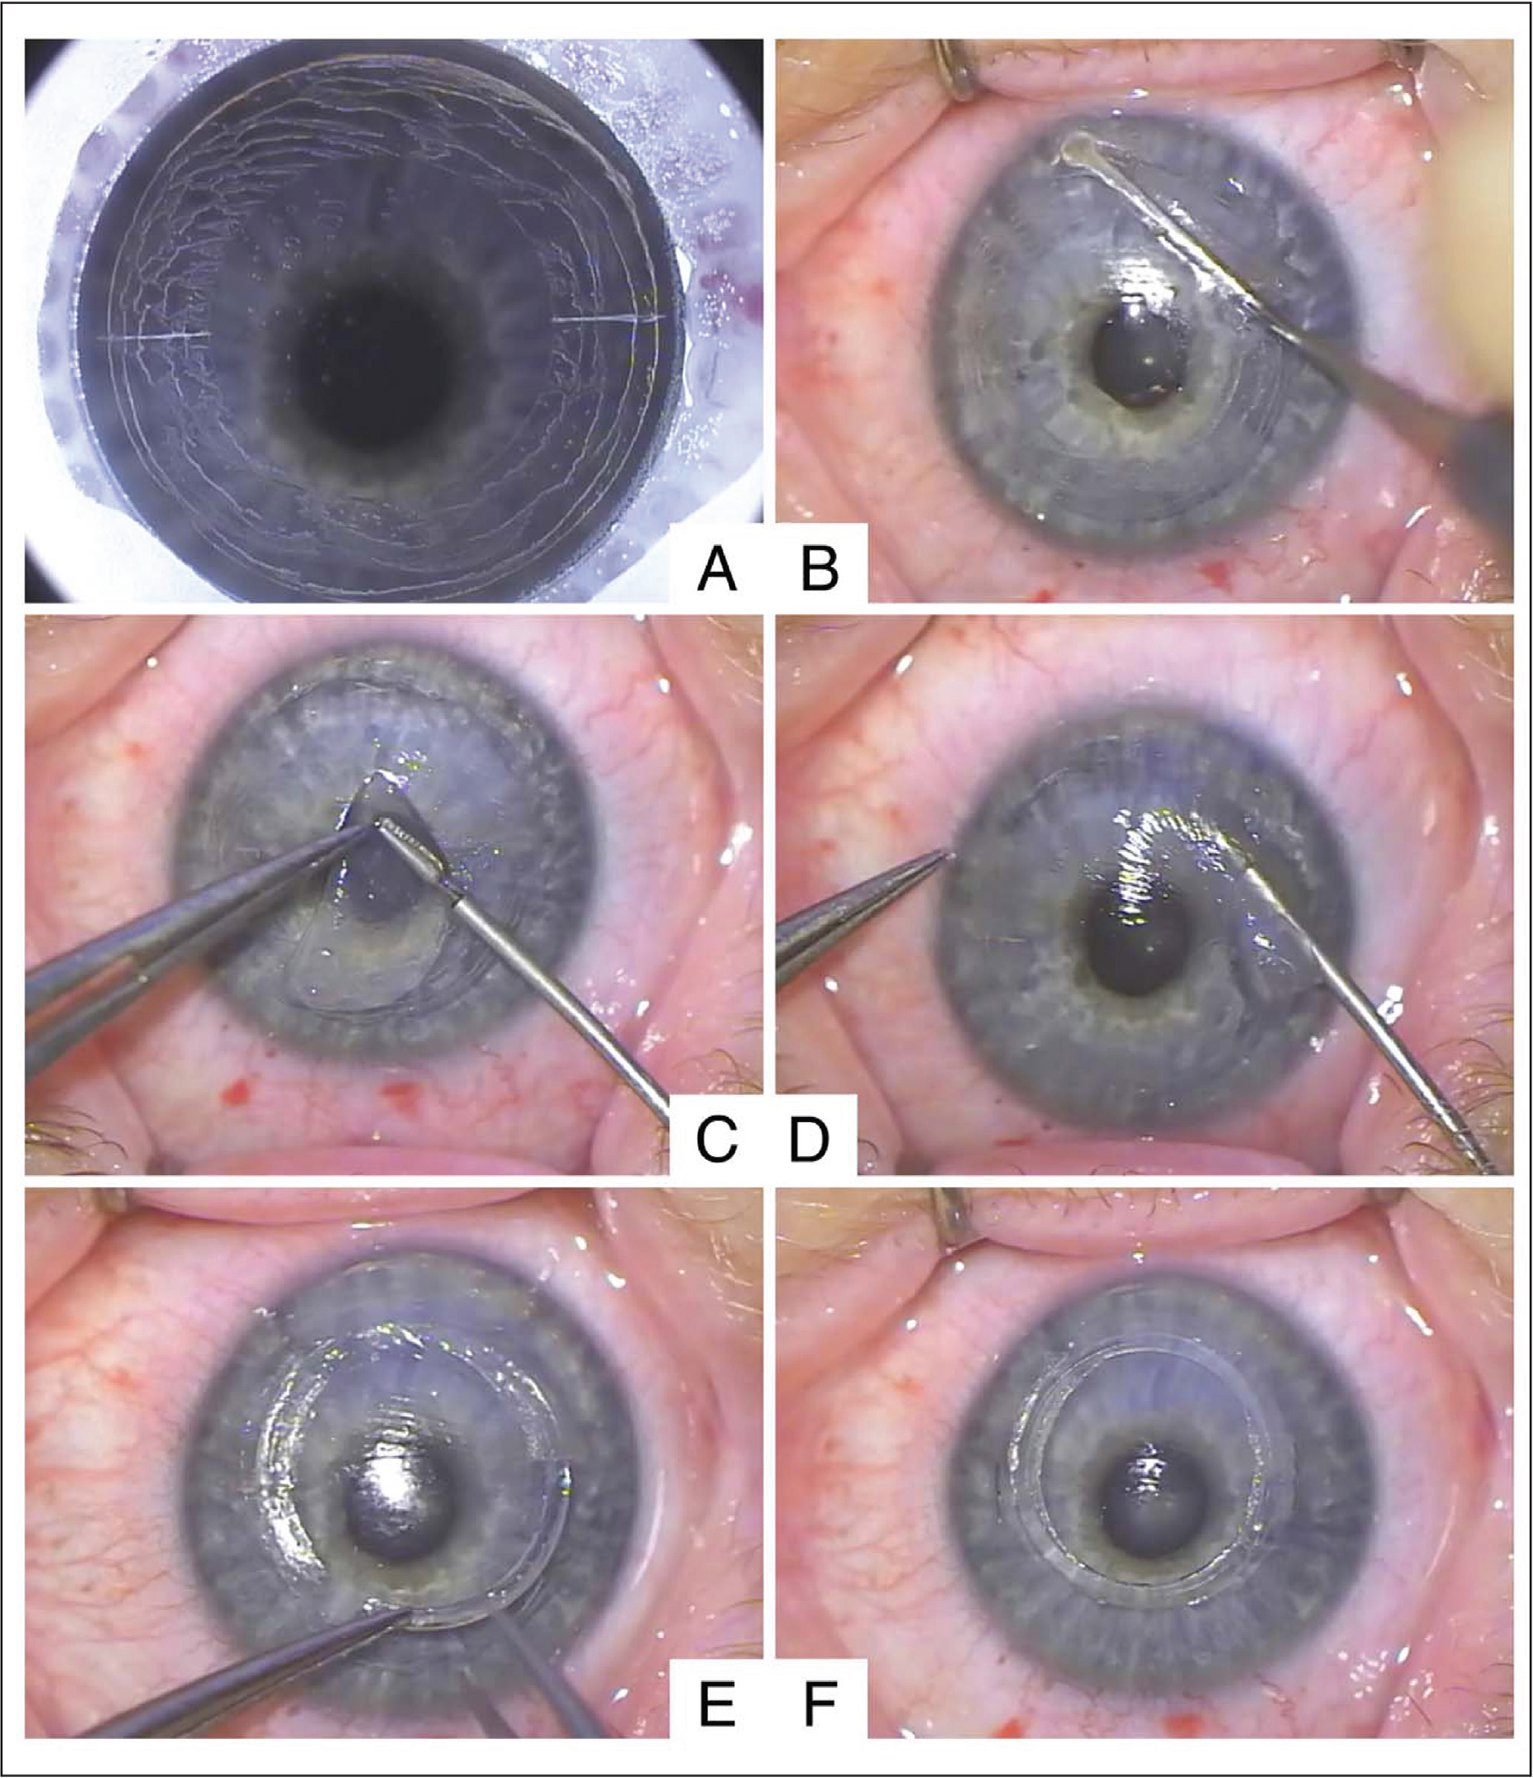 Intraoperative photographs. (A) Femtosecond laser tunnel creation. (B) Manual dissection through the thinned part of the cornea from the tunnel toward the limbus. (C) Refractive lenticule folded in half prior to insertion. (D) Lenticule implantation through the corneal incision into the stromal pocket. (E) Implantation of a 359° intracorneal ring segment after the lenticule placement. (F) Corneal incisions sutured with 10-0 nylon.